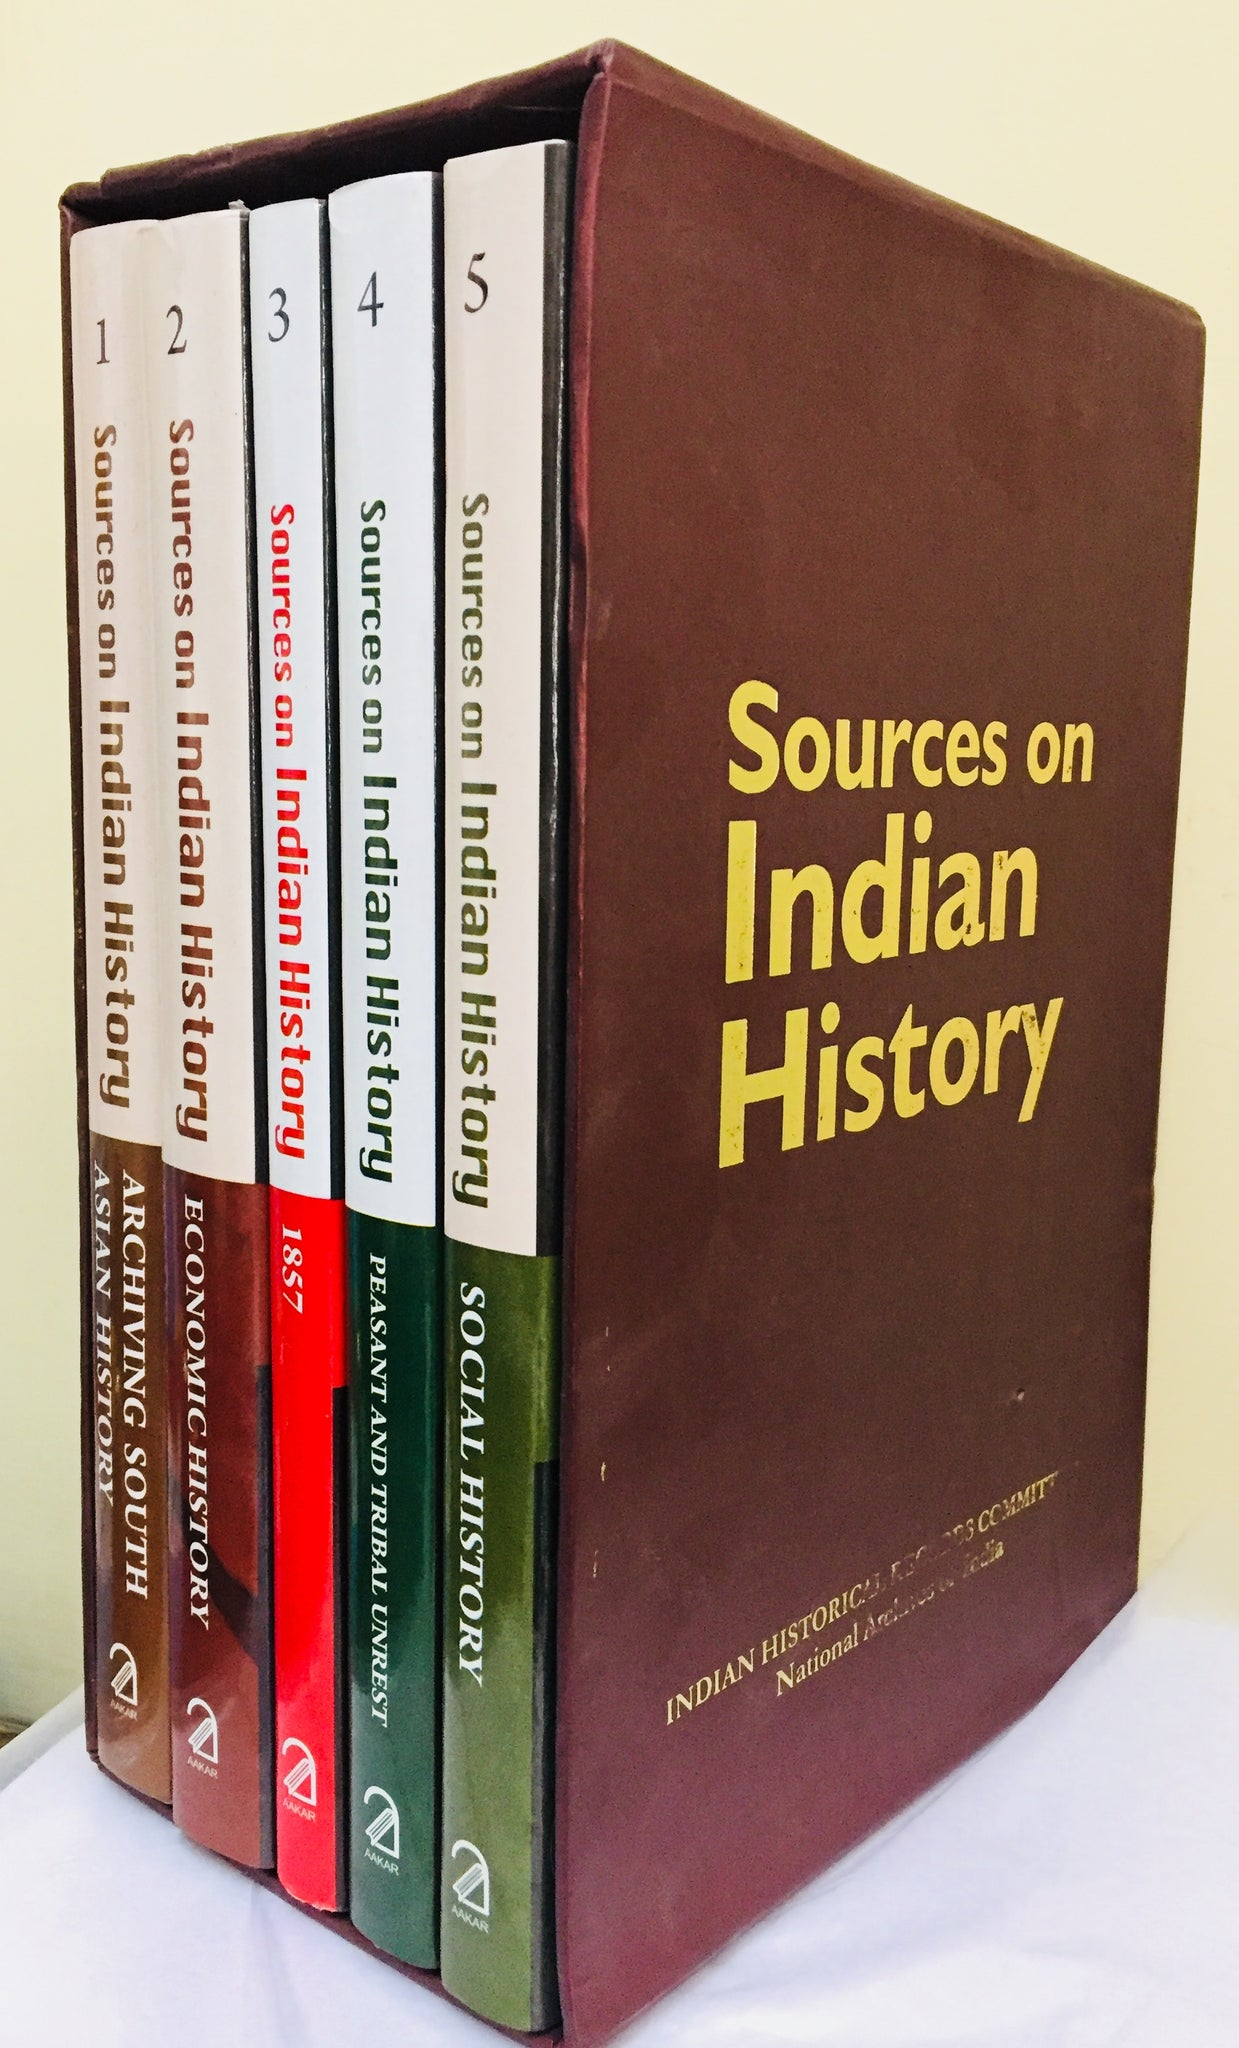 Sources On Indian History Vol. 2: Economic History